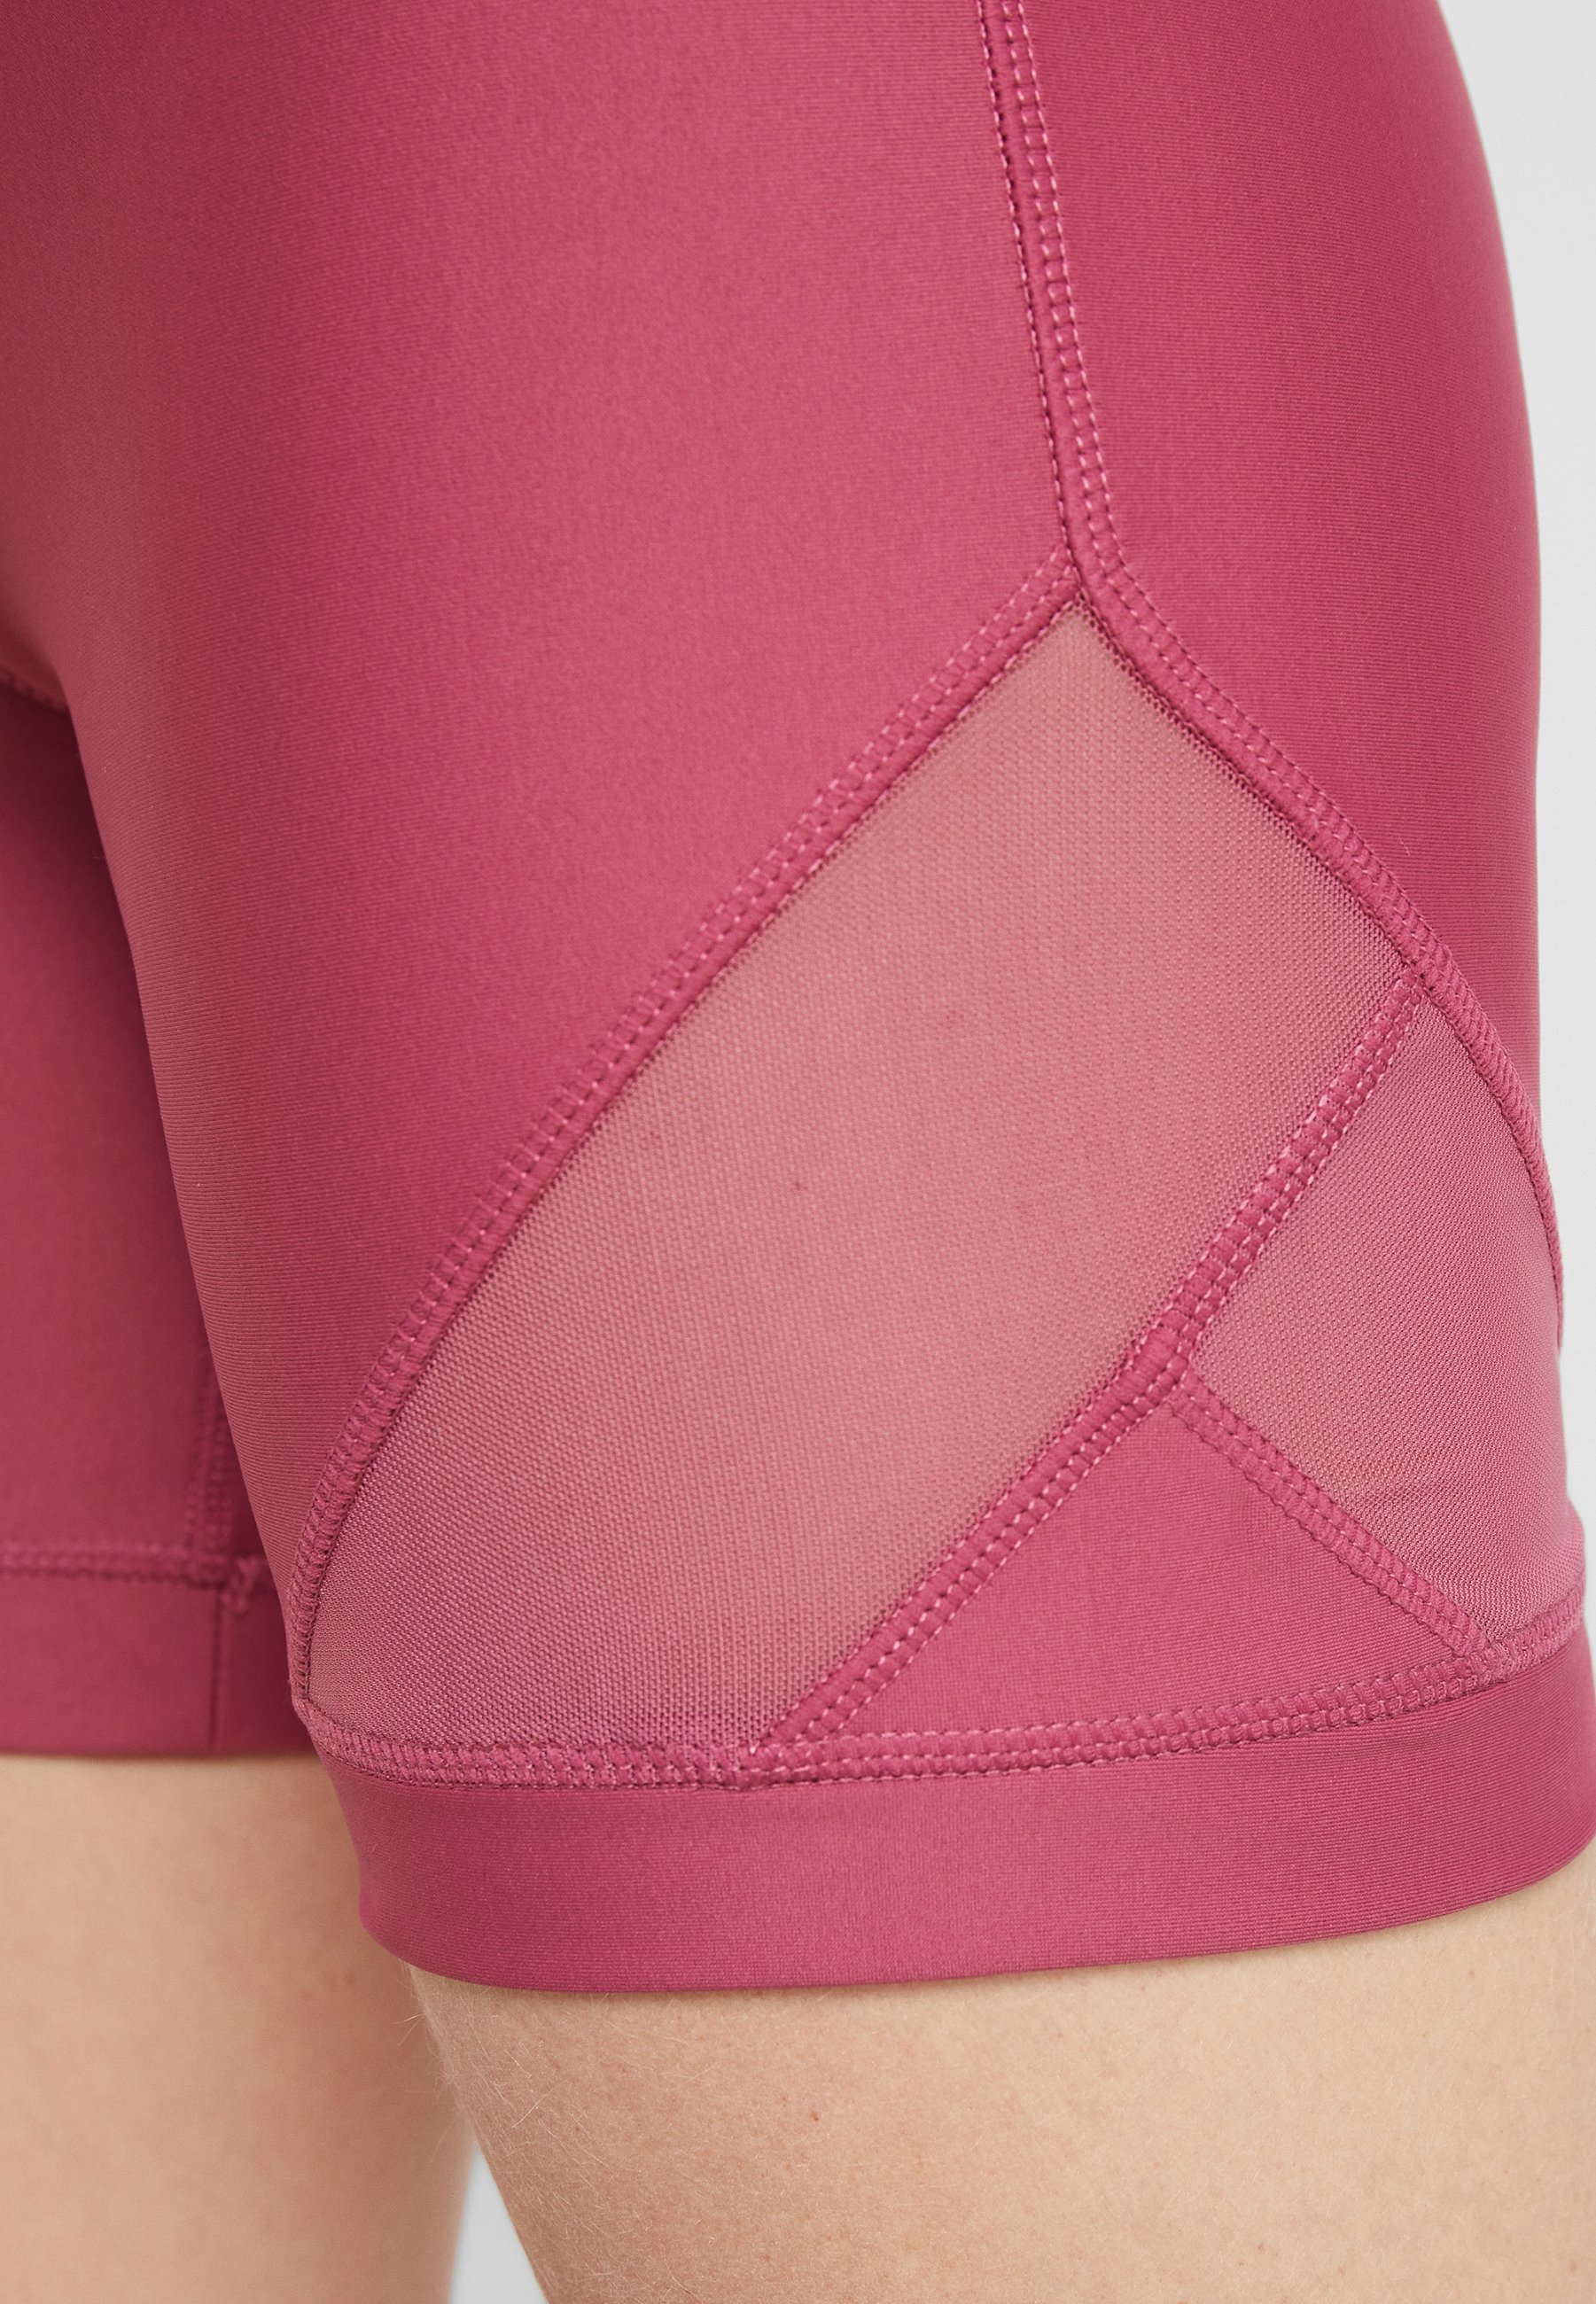 Cotton On Body PANEL BIKE SHORT - Tights rose sangria